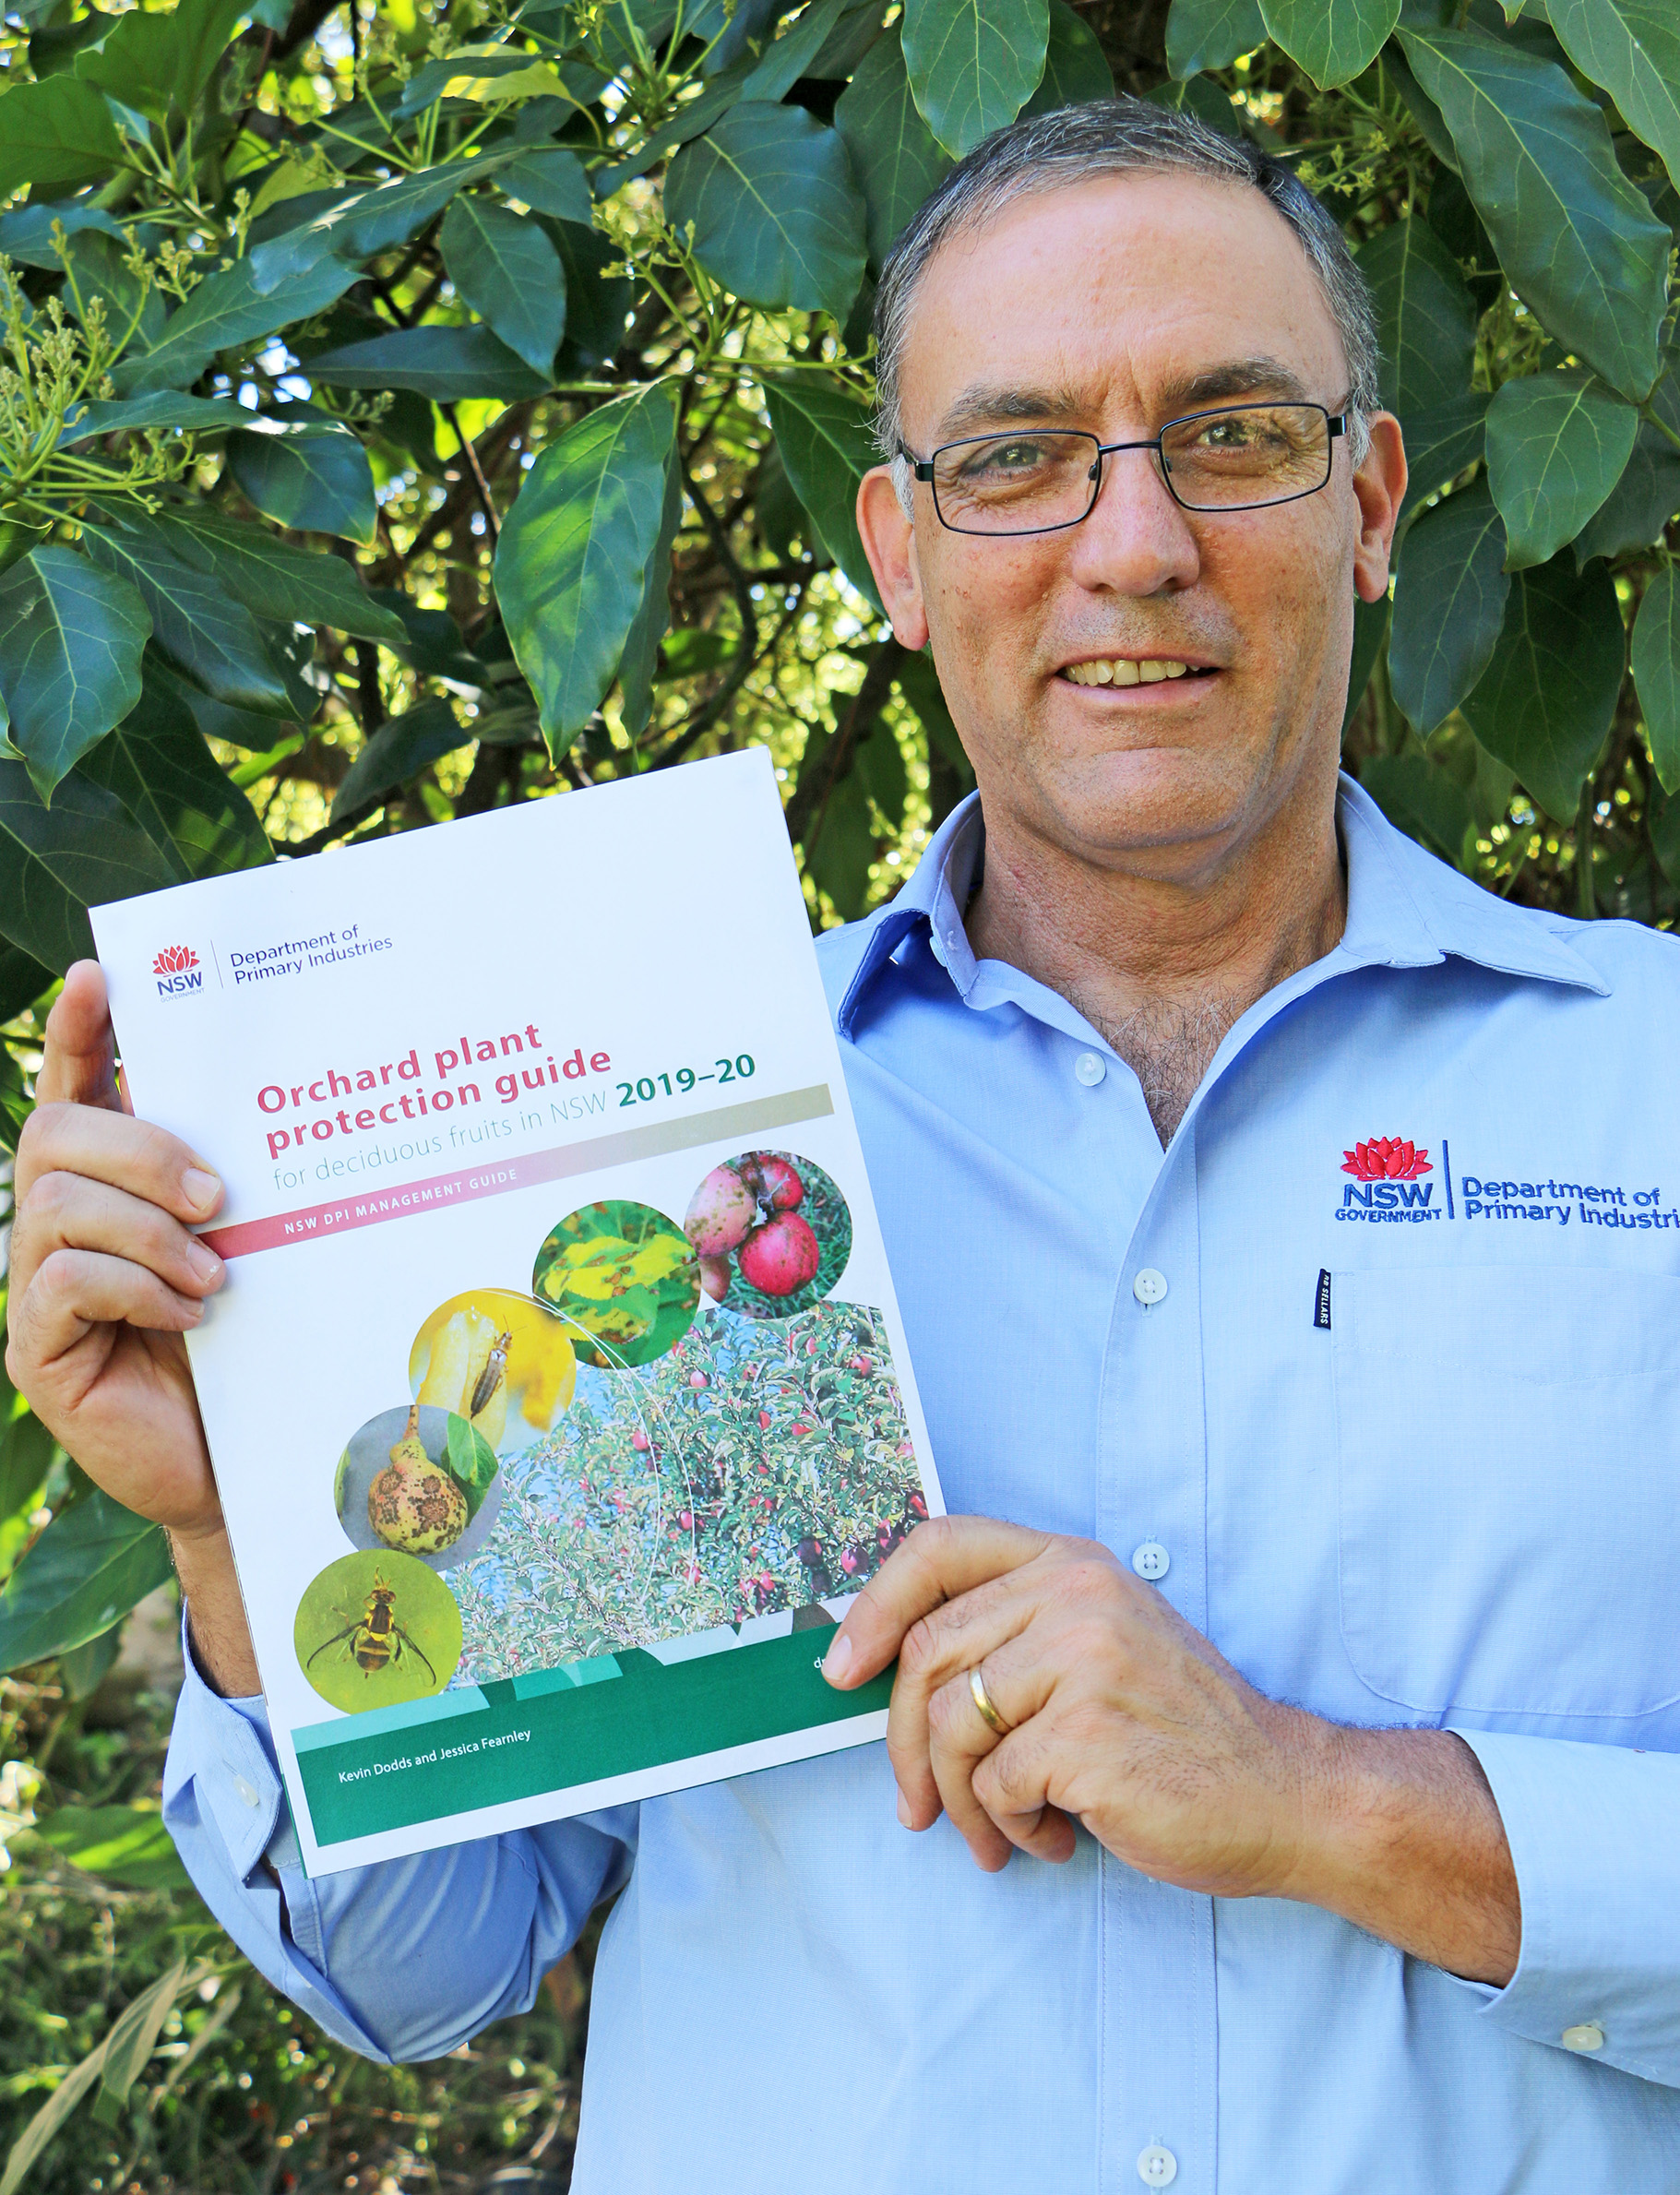 Kevin Dodds holding the Orchard Plant Protection Guide